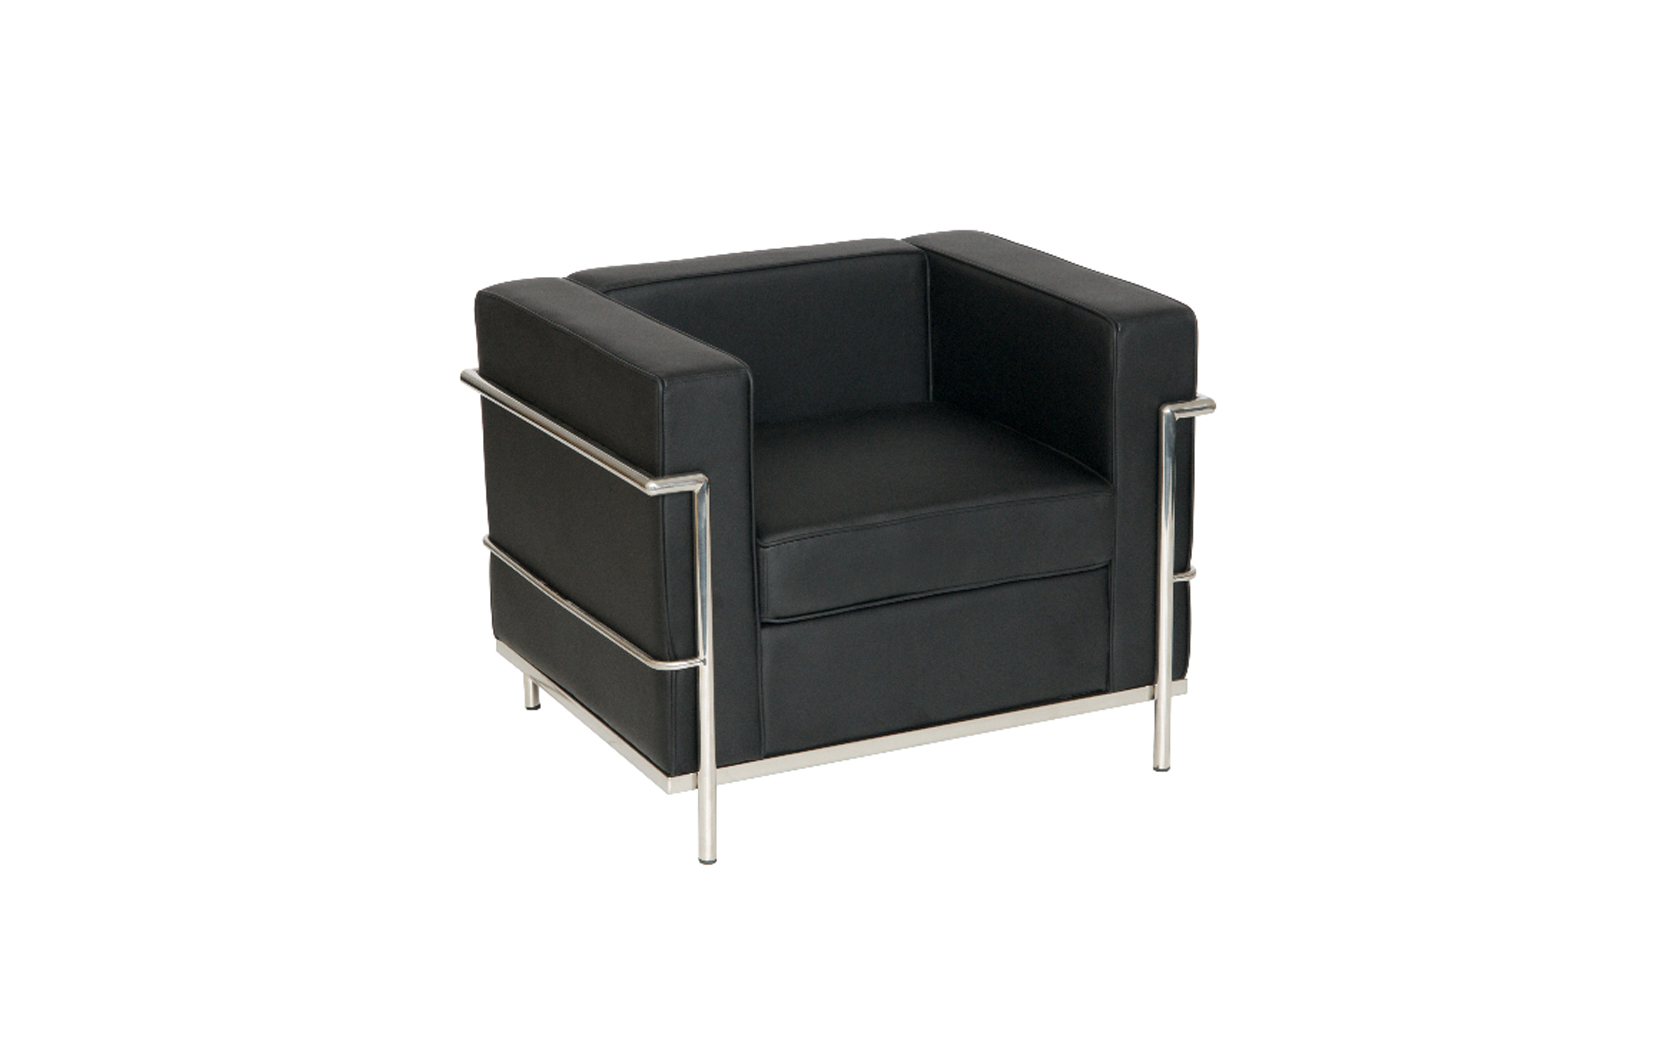 Furniture furniture seating storage operator seating - Le Corbusier Style Armchair Sj009 1 Somercotes Office